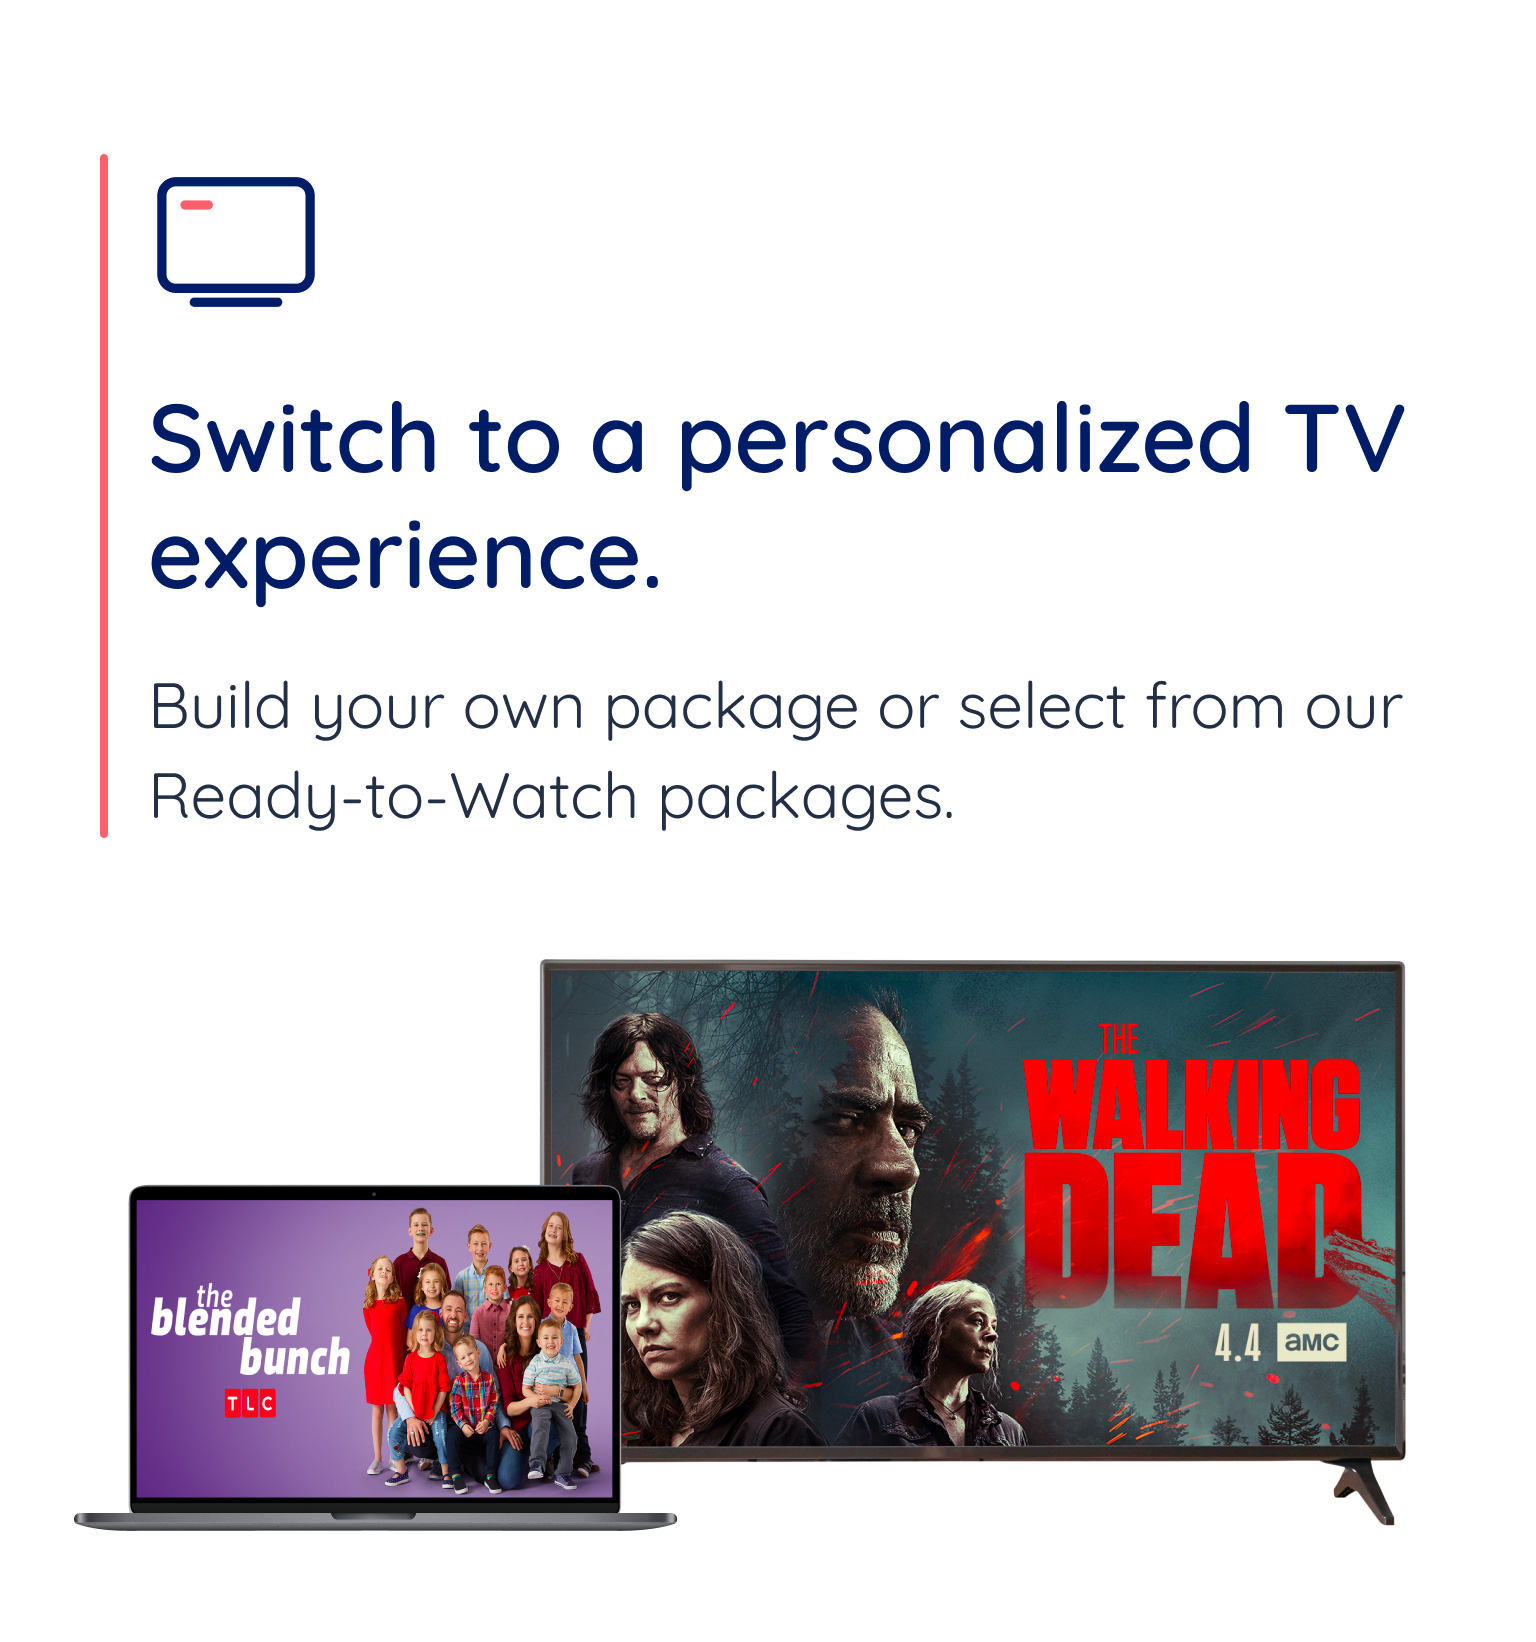 Switch to a personalized TV experience. Build your own package of select from our Ready-to-Watch packages.